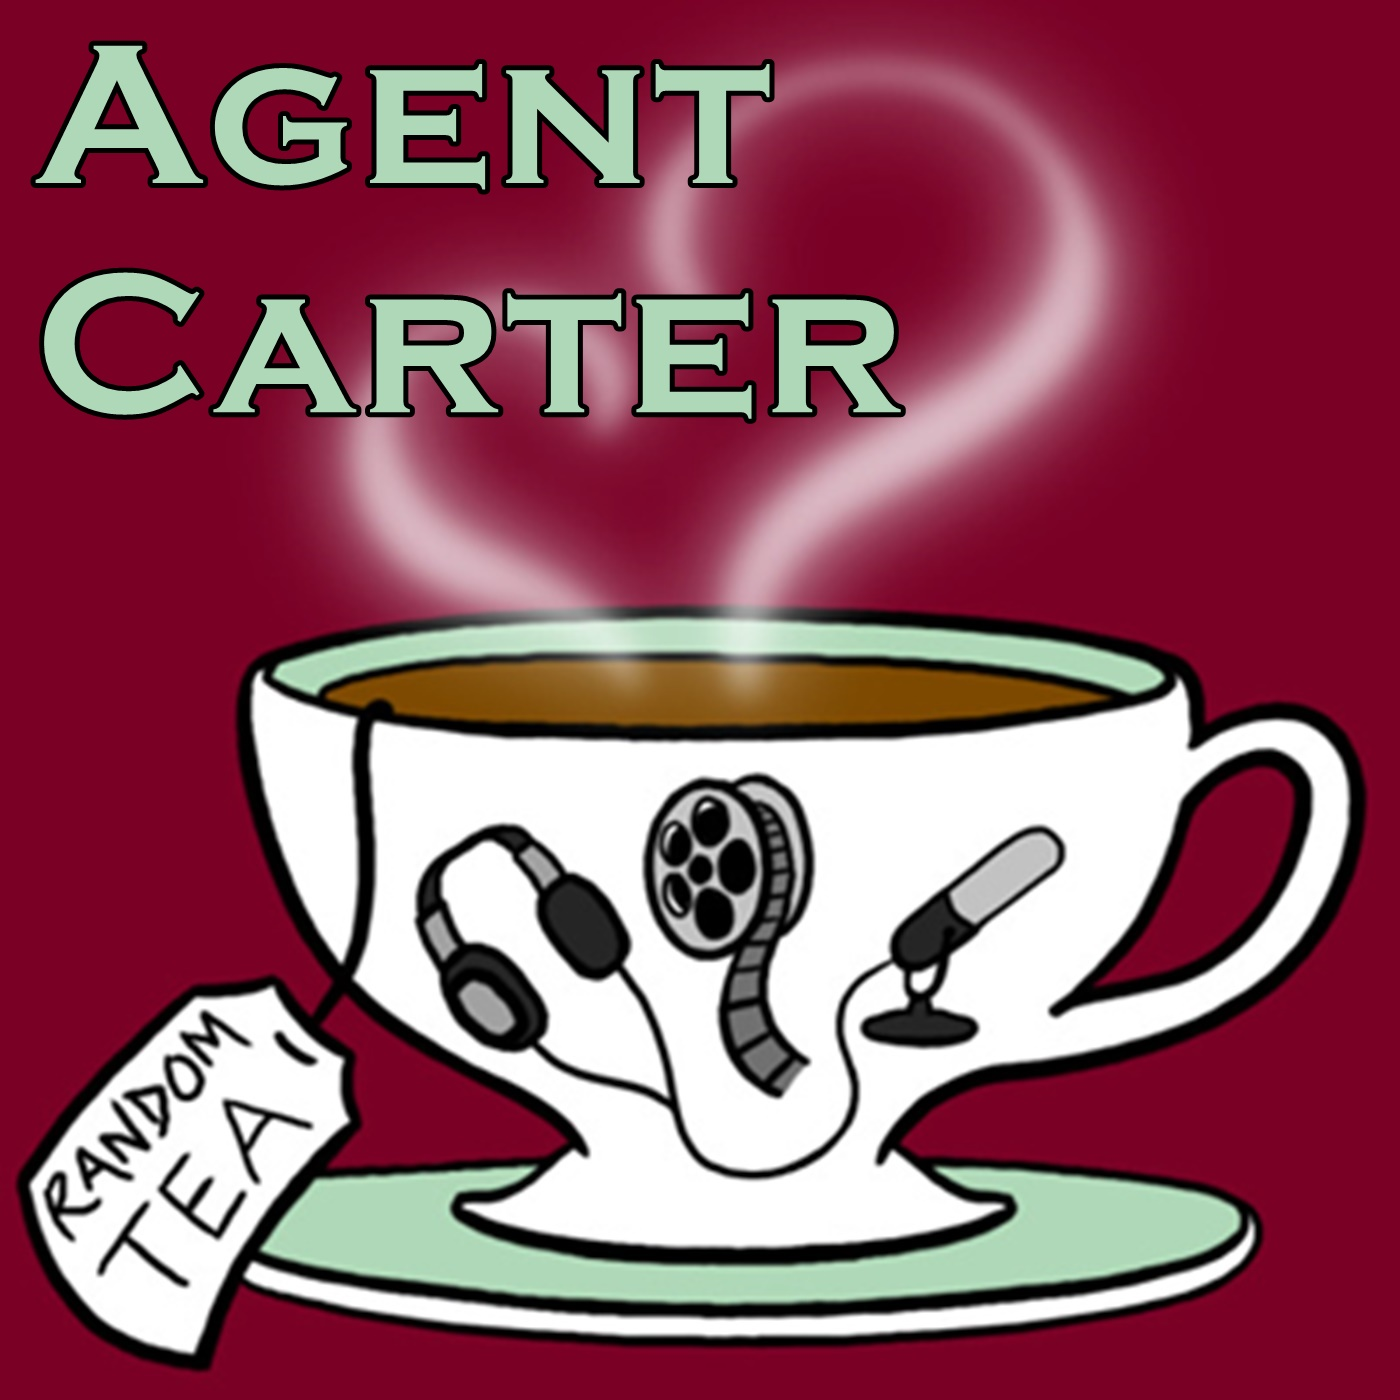 Agent Carter - Random Tea Podcasts